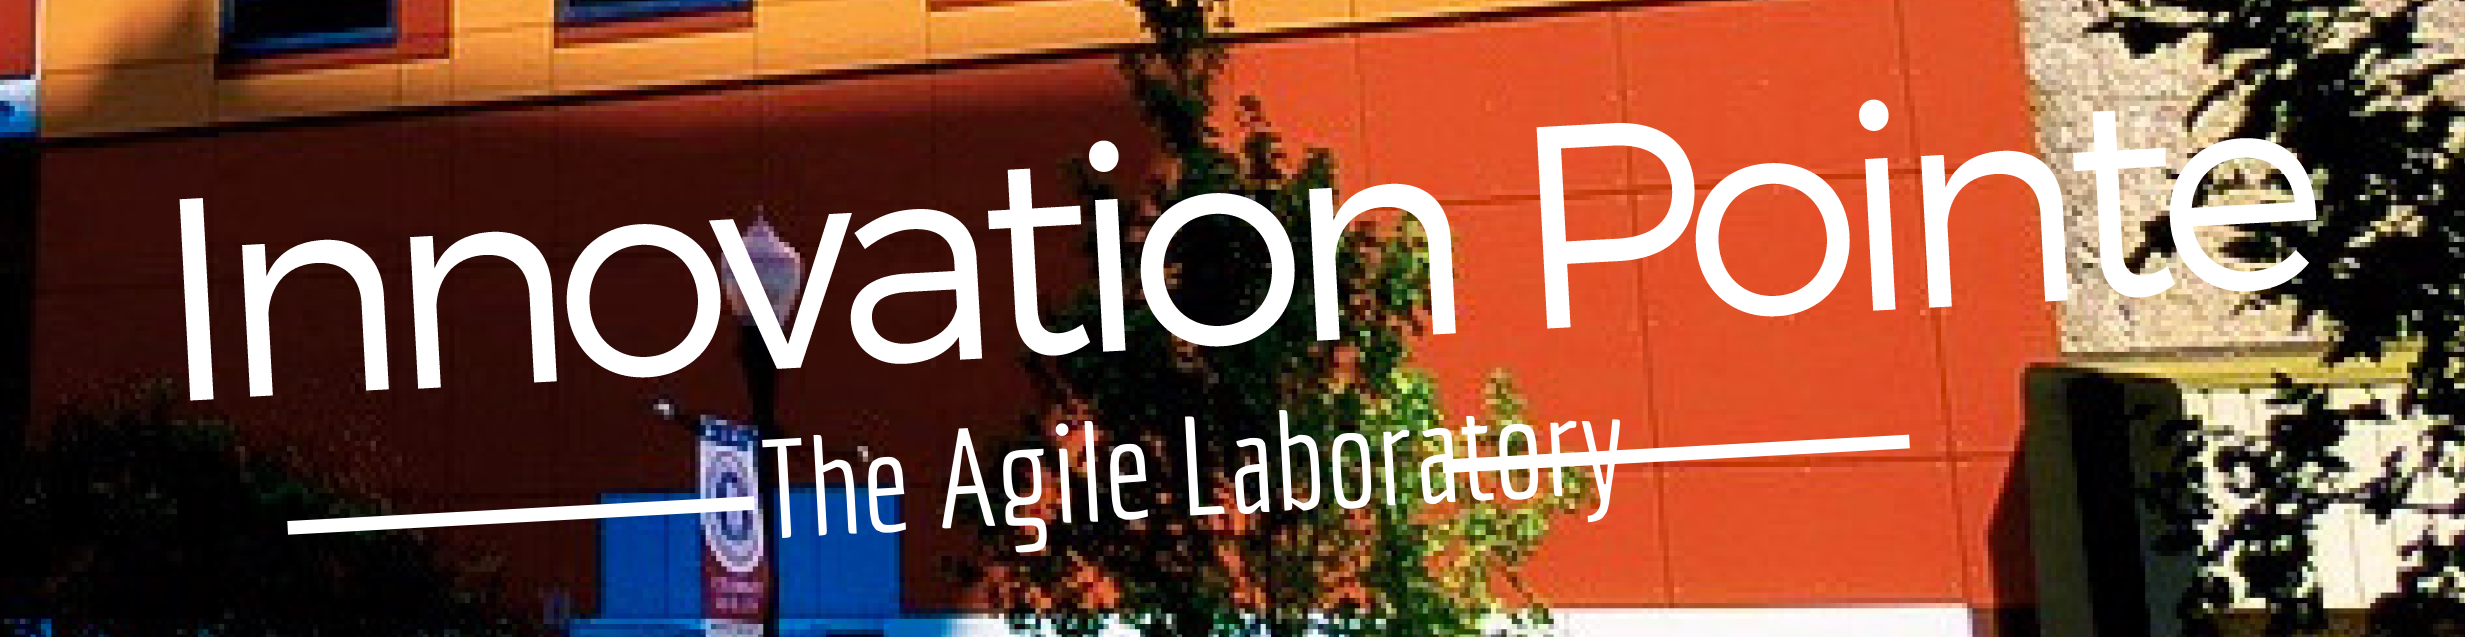 Innovation Pointe - The Agile Laboratory